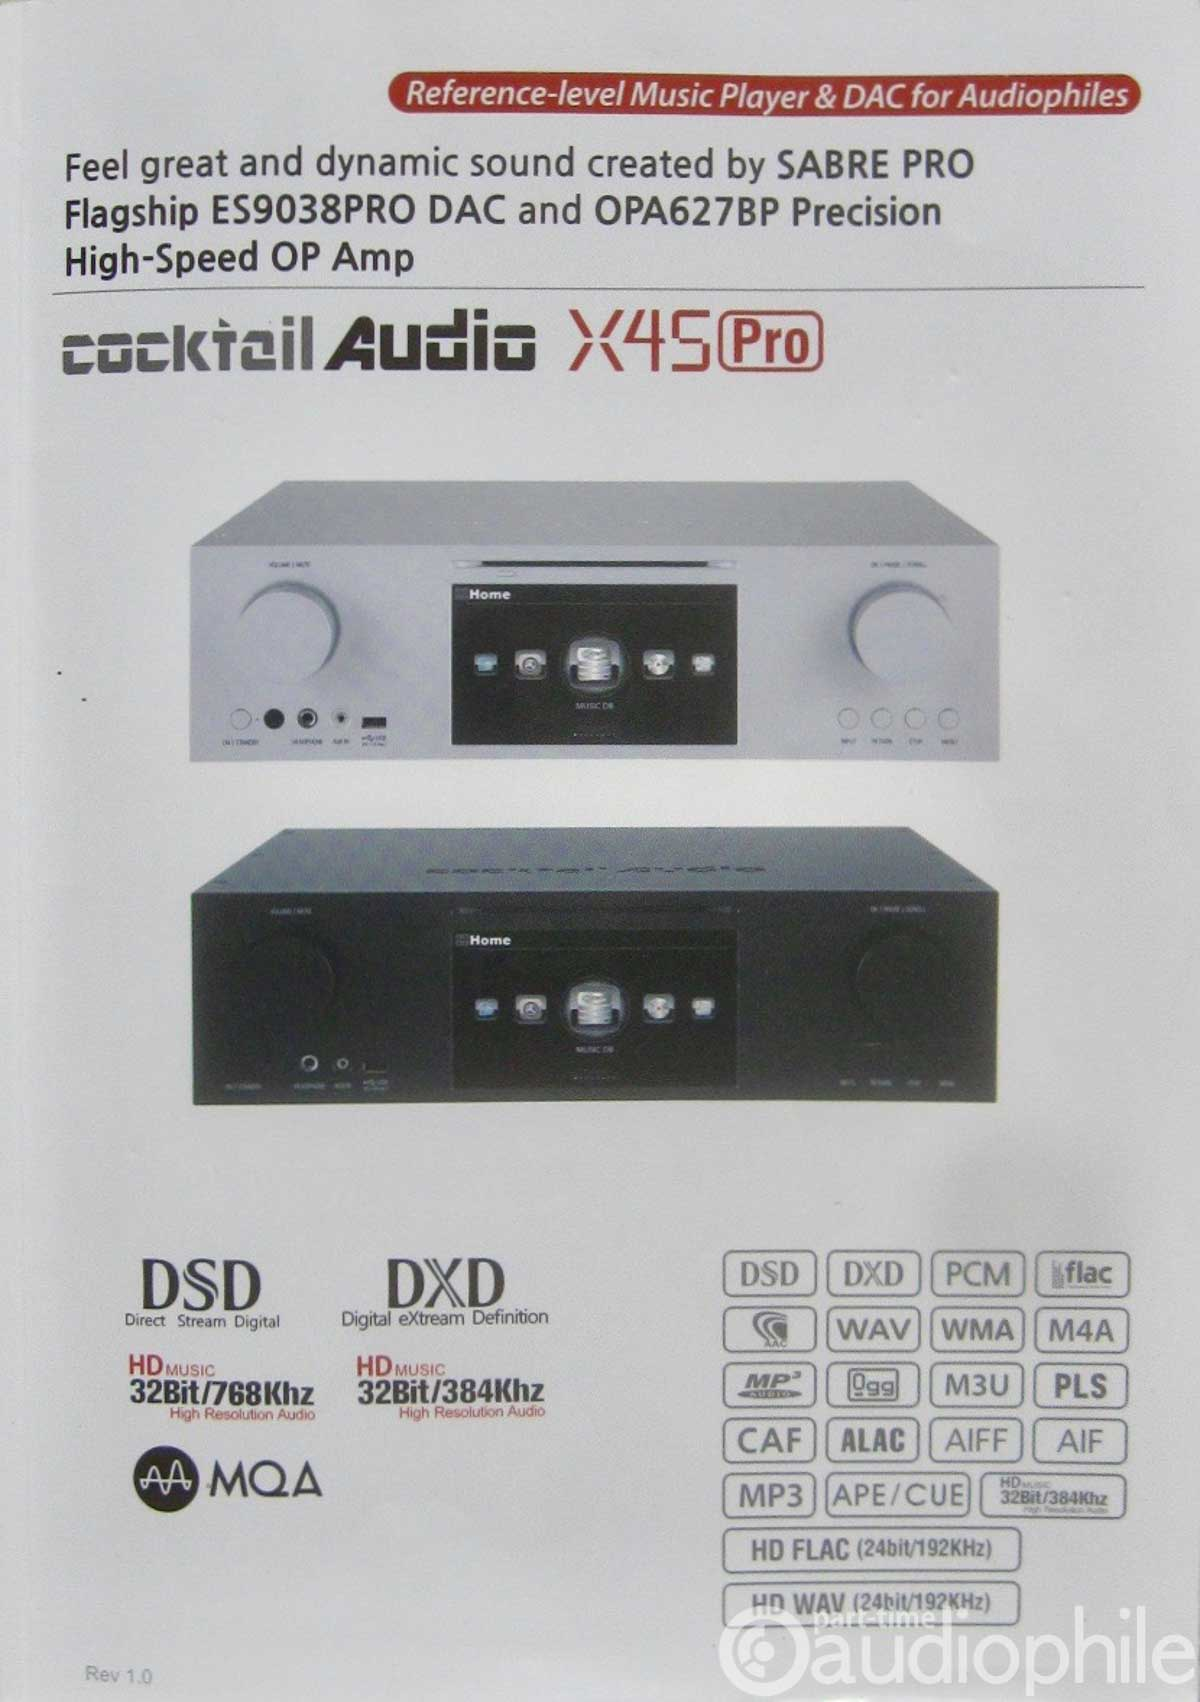 Cocktail Audio X45 Pro Music Player/DAC | Review | Part-Time